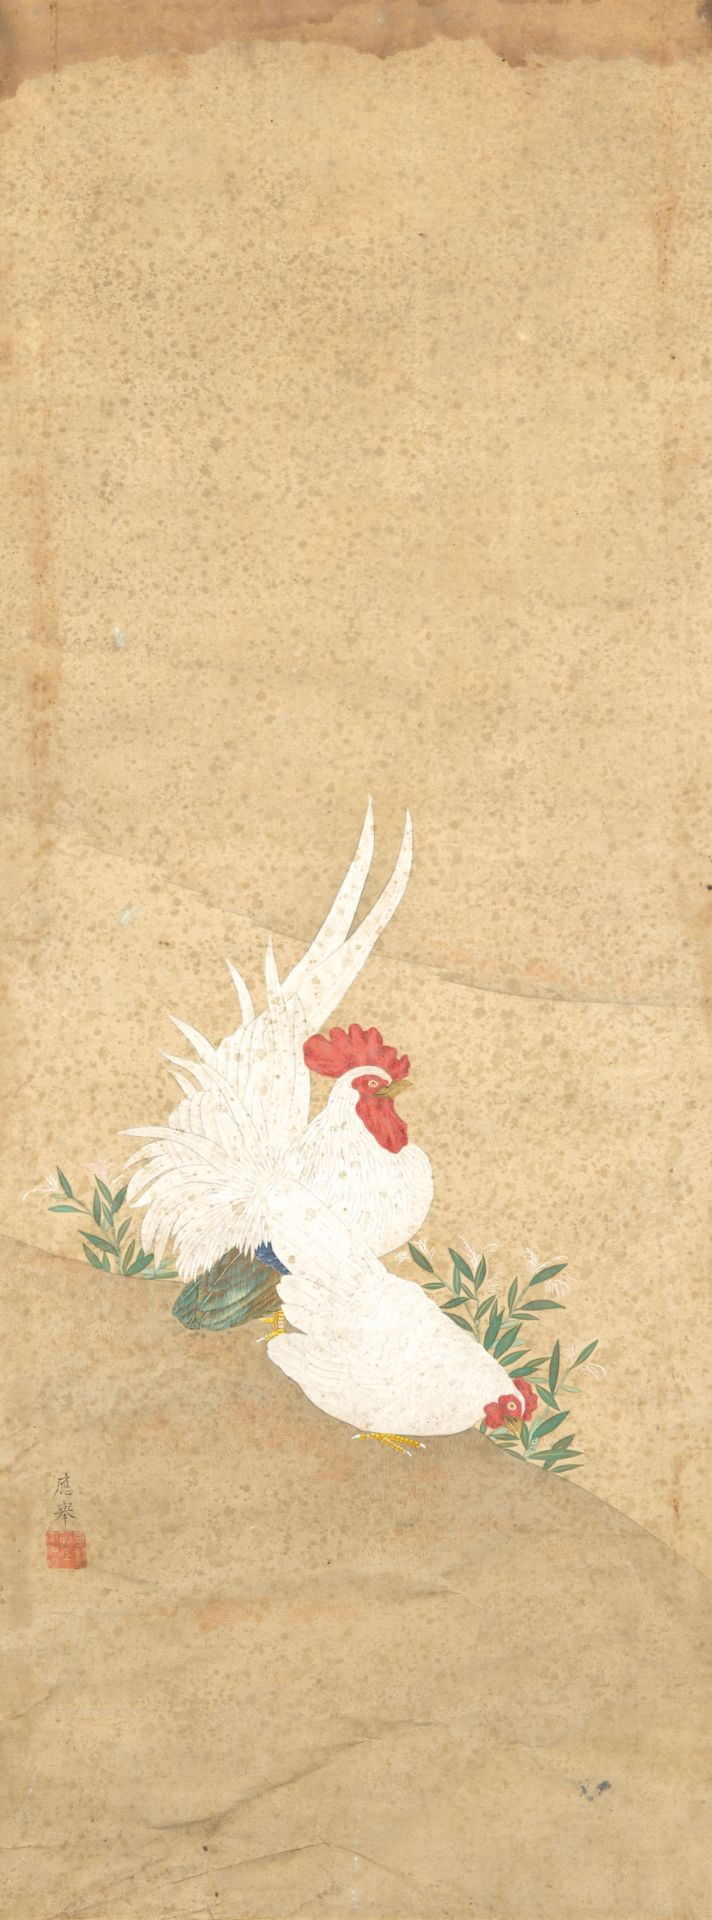 Los 198 - TWO PAINTINGS ON SILK, CHINA, 19TH-20TH CENTURY (2)